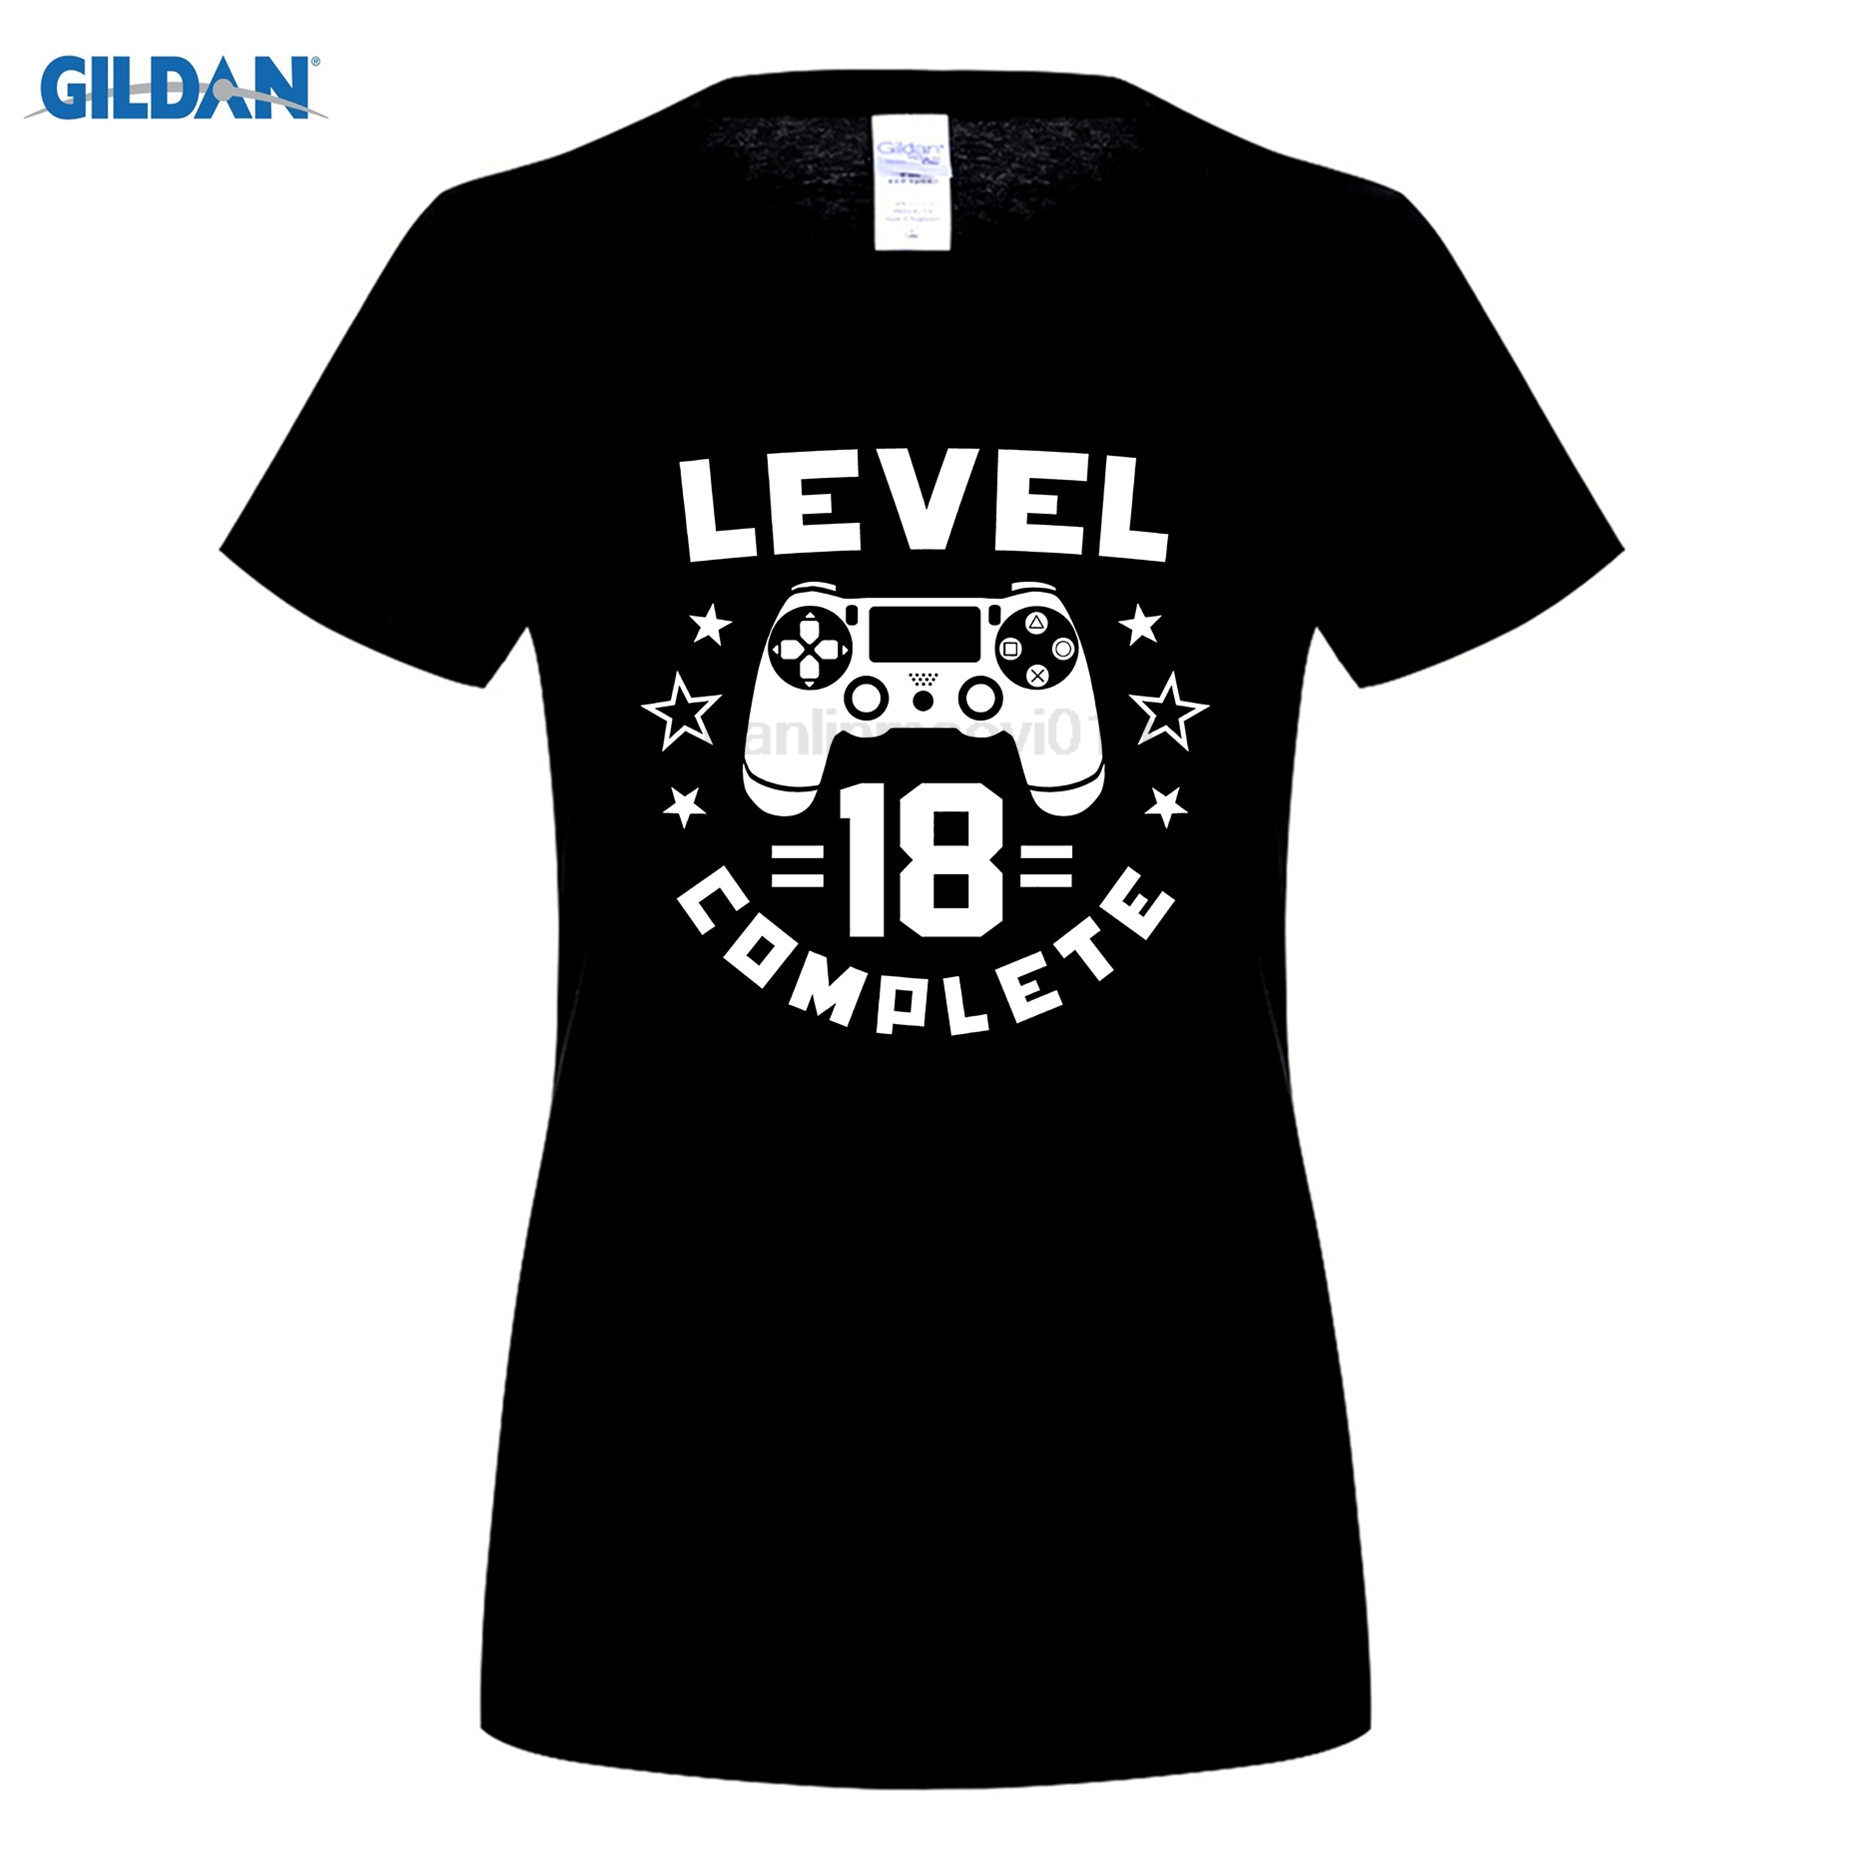 GILDAN Level 18 Complete Video Gamer Geek Boys 18th Birthday Shirt Latest Fun T-shirt Top Casual Wear ...